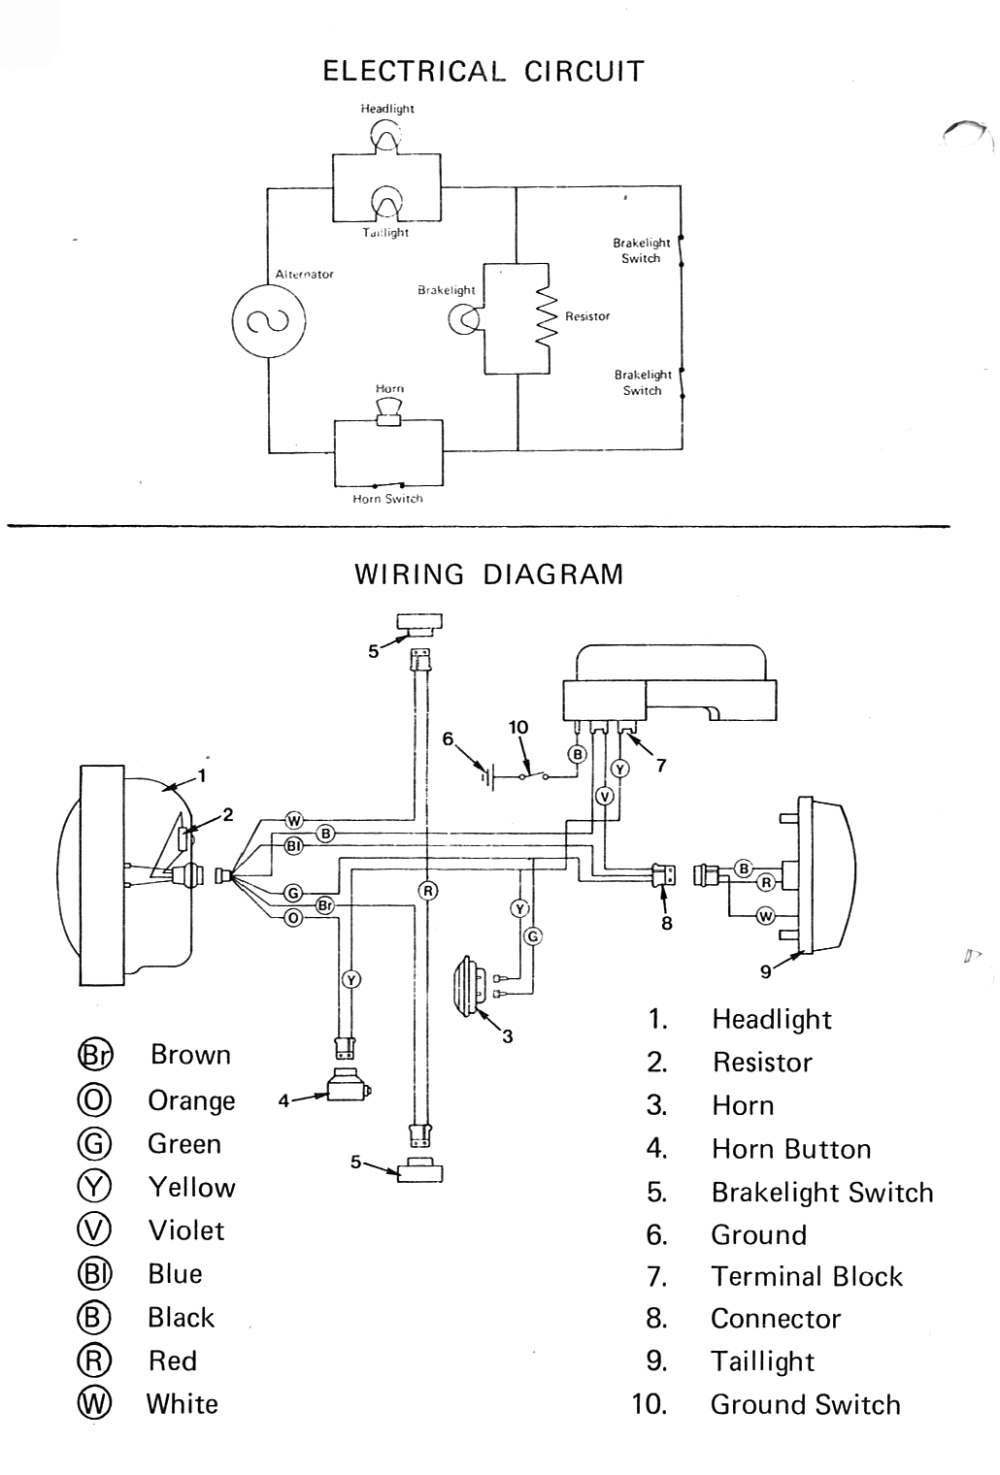 medium resolution of 1980 suzuki fz50 wiring diagram wiring diagram advance 1980 suzuki fa50 wiring diagram